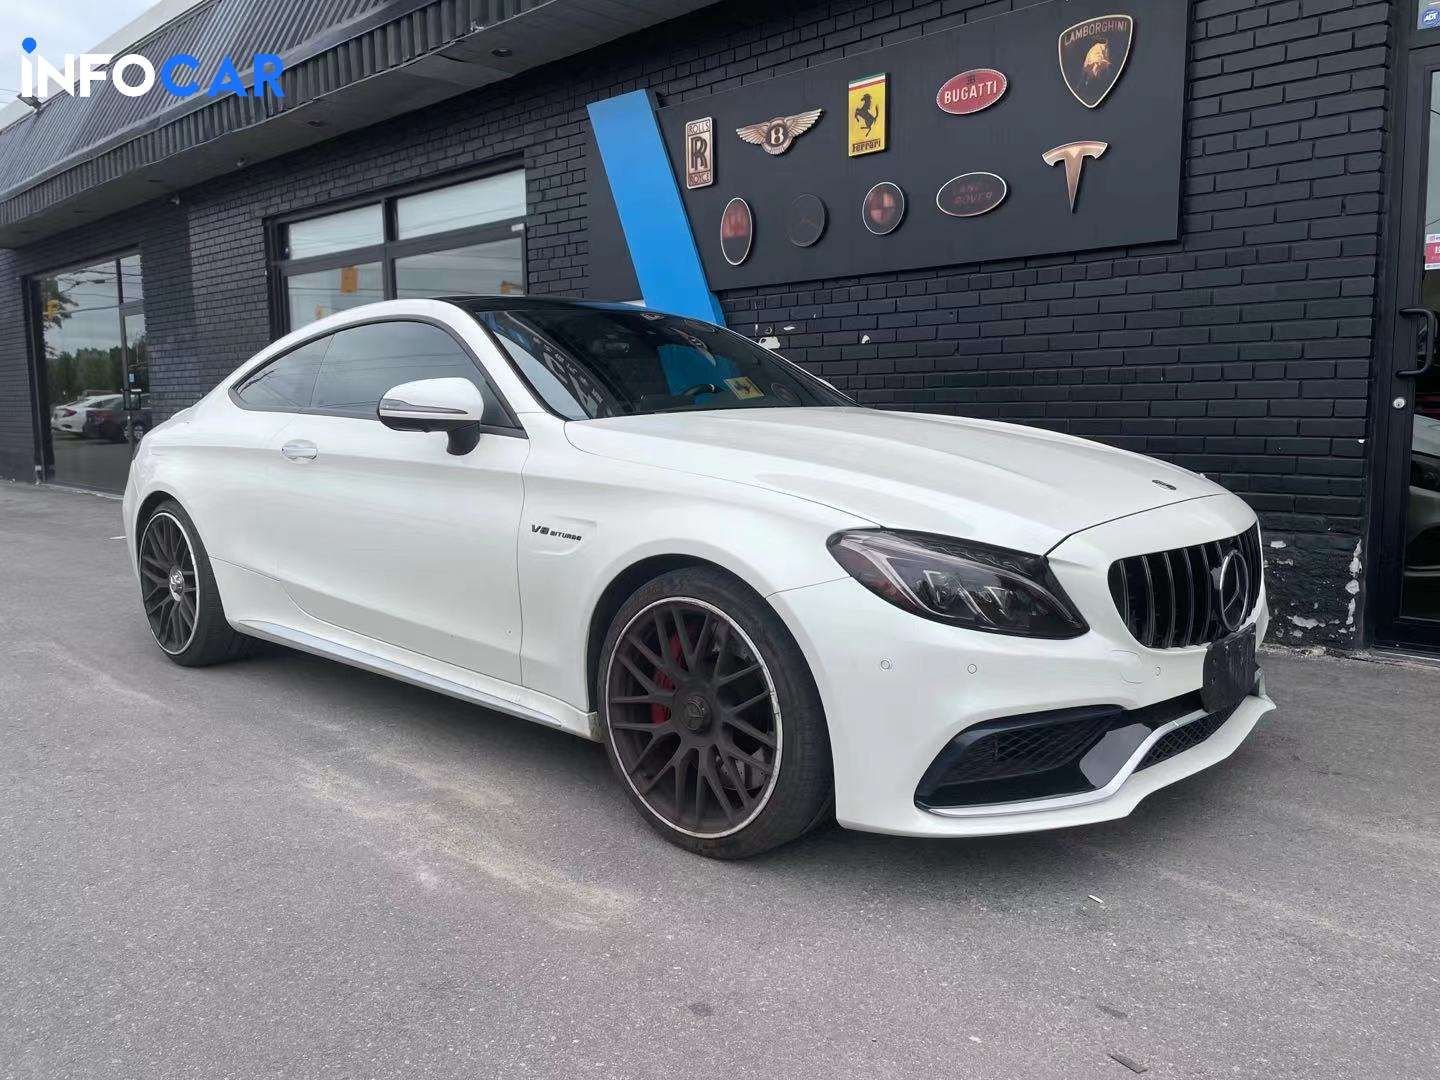 2018 Mercedes-Benz C-Class 63s - INFOCAR - Toronto's Most Comprehensive New and Used Auto Trading Platform